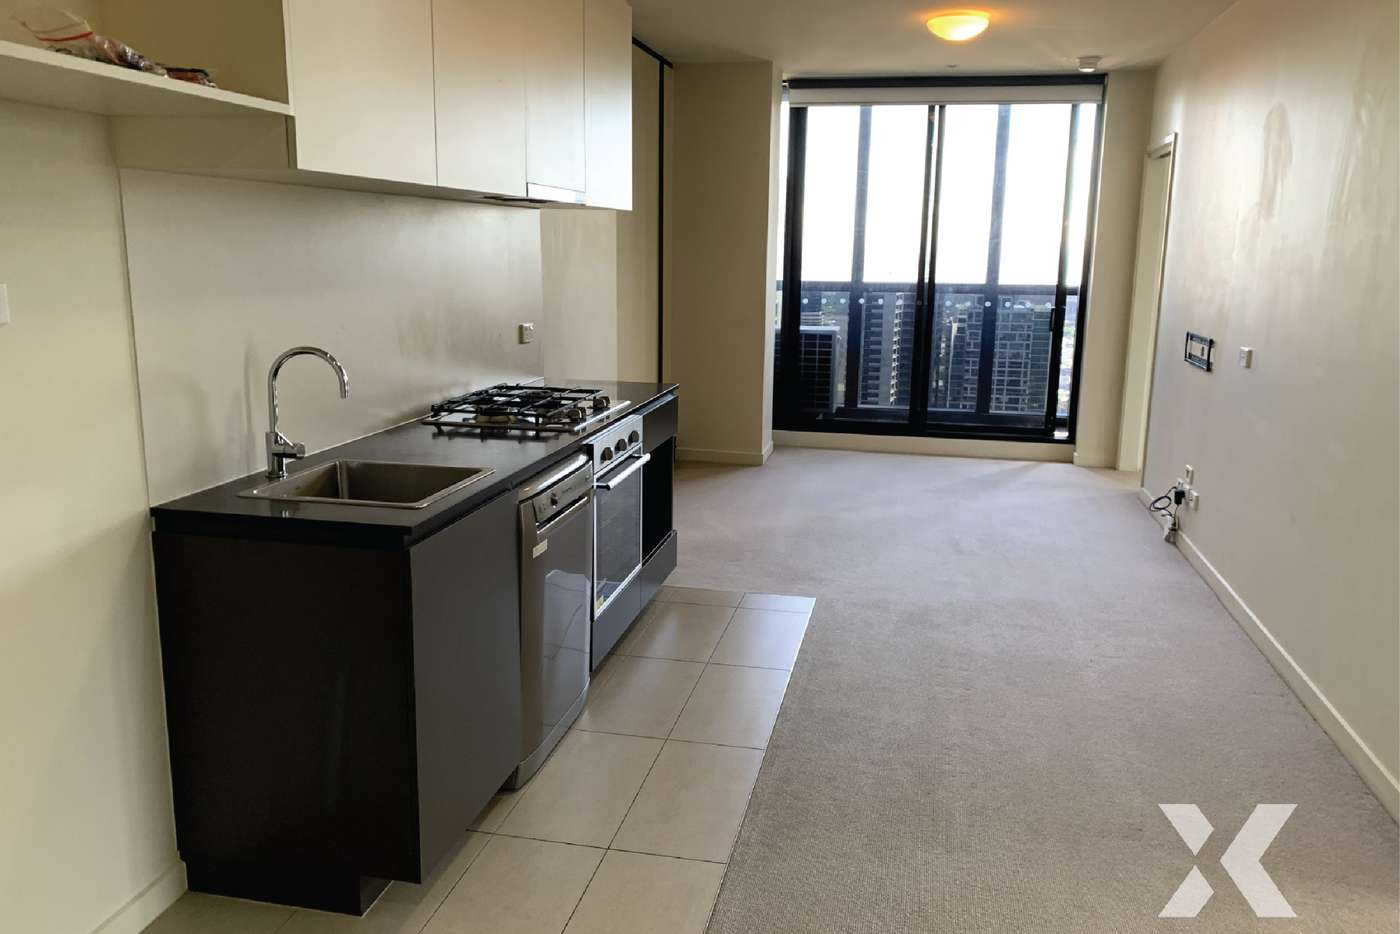 Main view of Homely apartment listing, 5405/568 Collins St, Melbourne VIC 3000